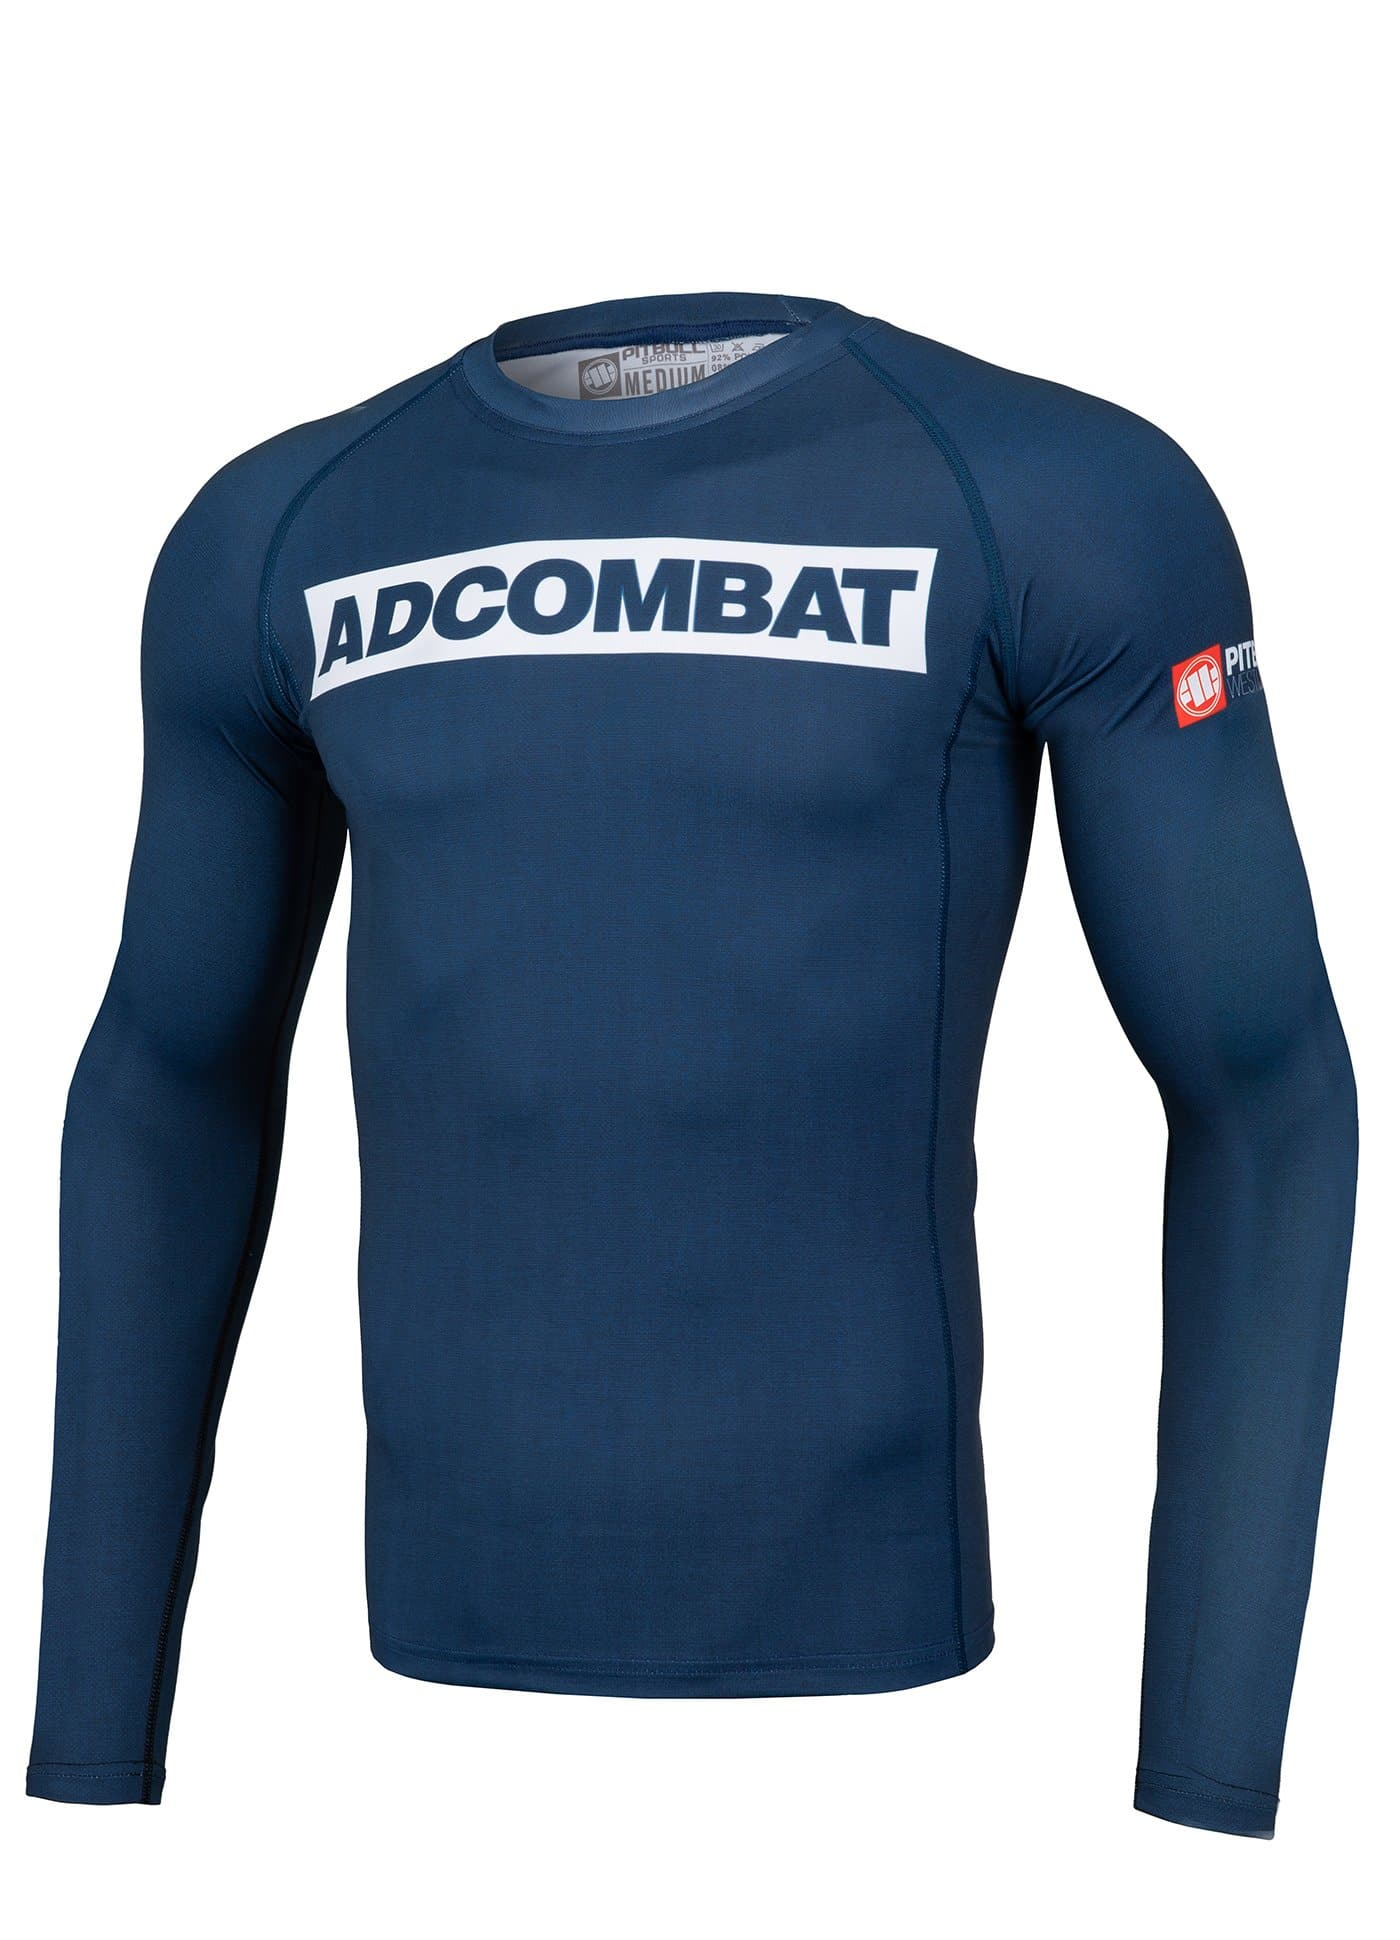 ADCC HILLTOP Dark Navy Long Sleeve Rashguard